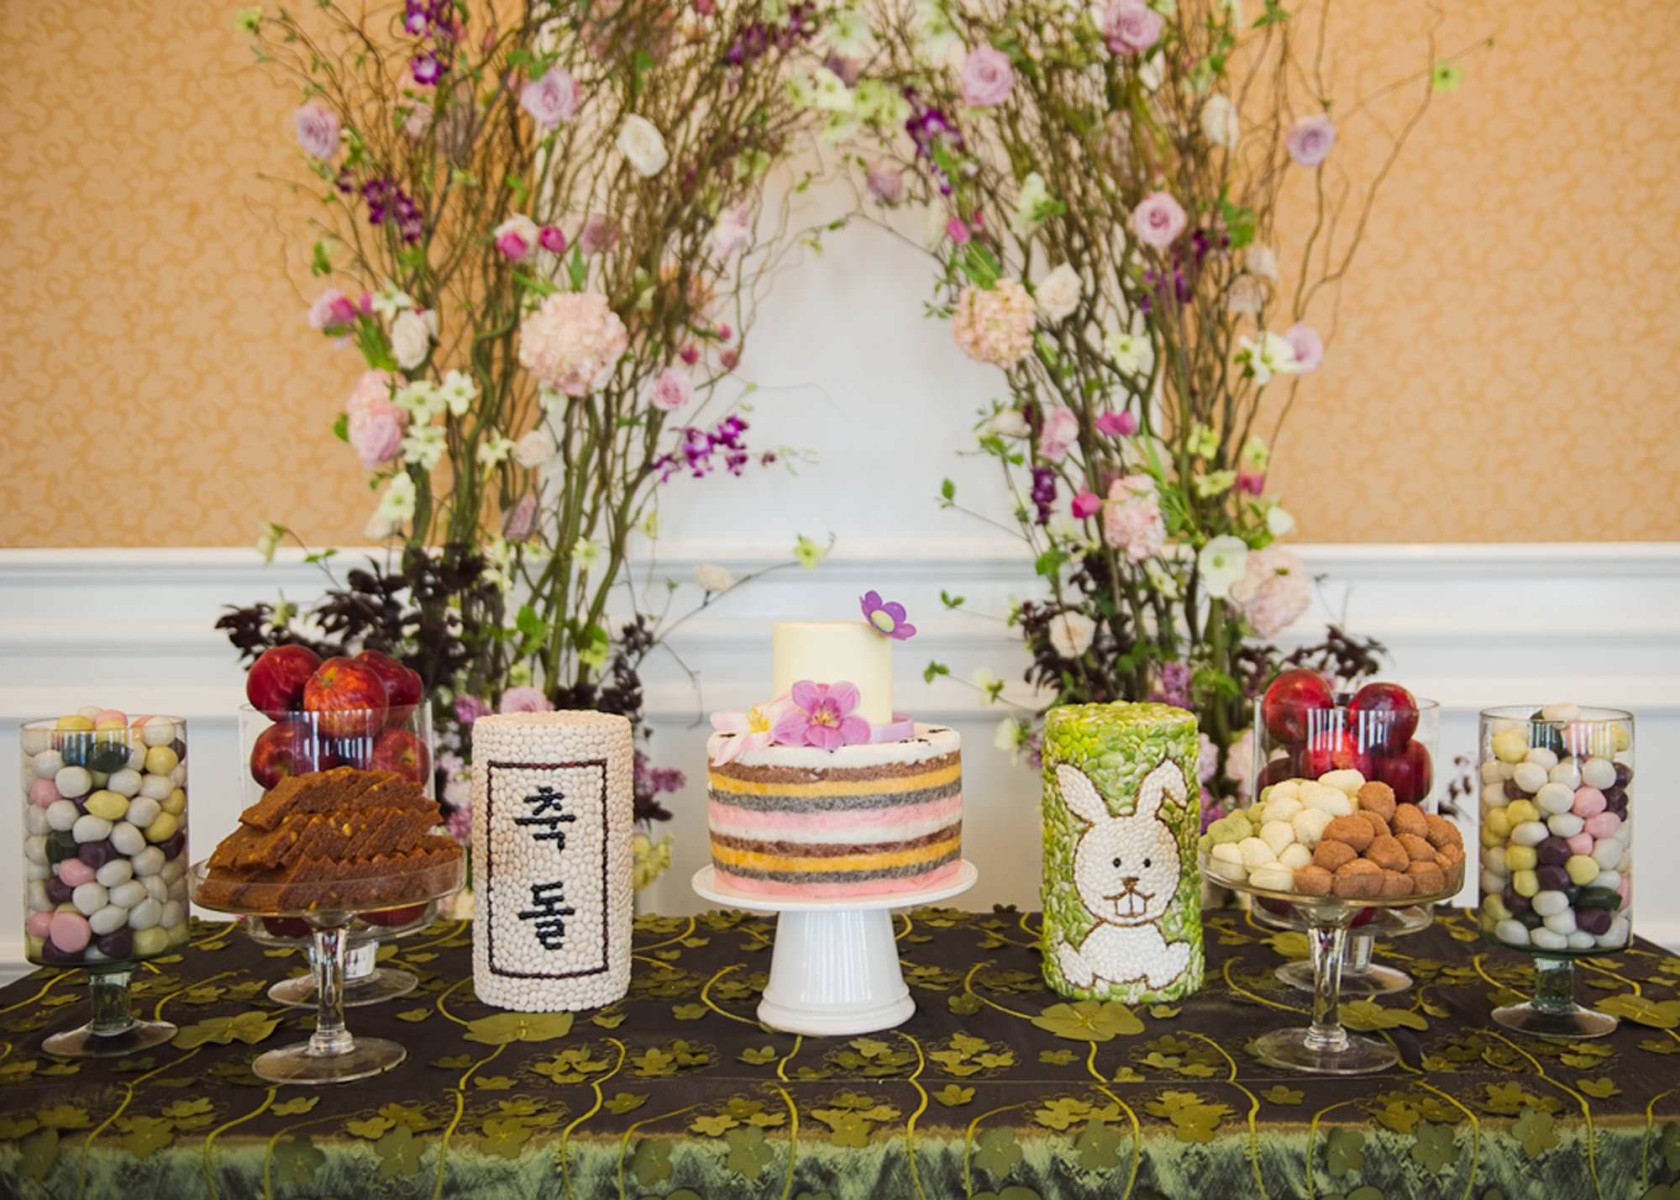 nisies-enchanted-florist-orange-county-Olivia-Storybook-Birthday-event-5